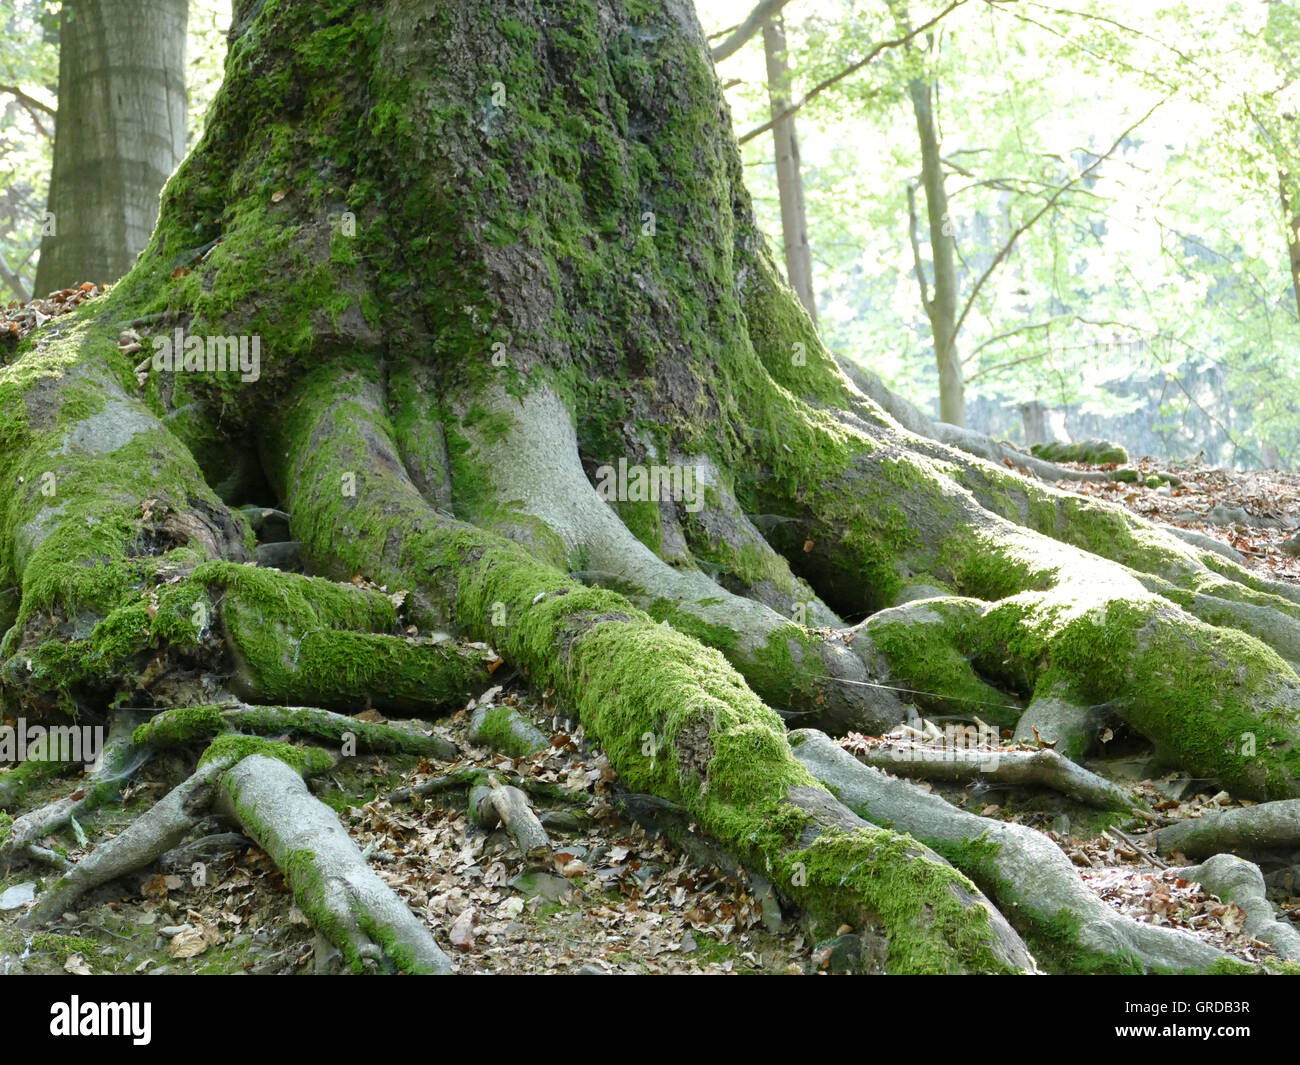 Mighty Old Tree In The Forest, Roots - Stock Image